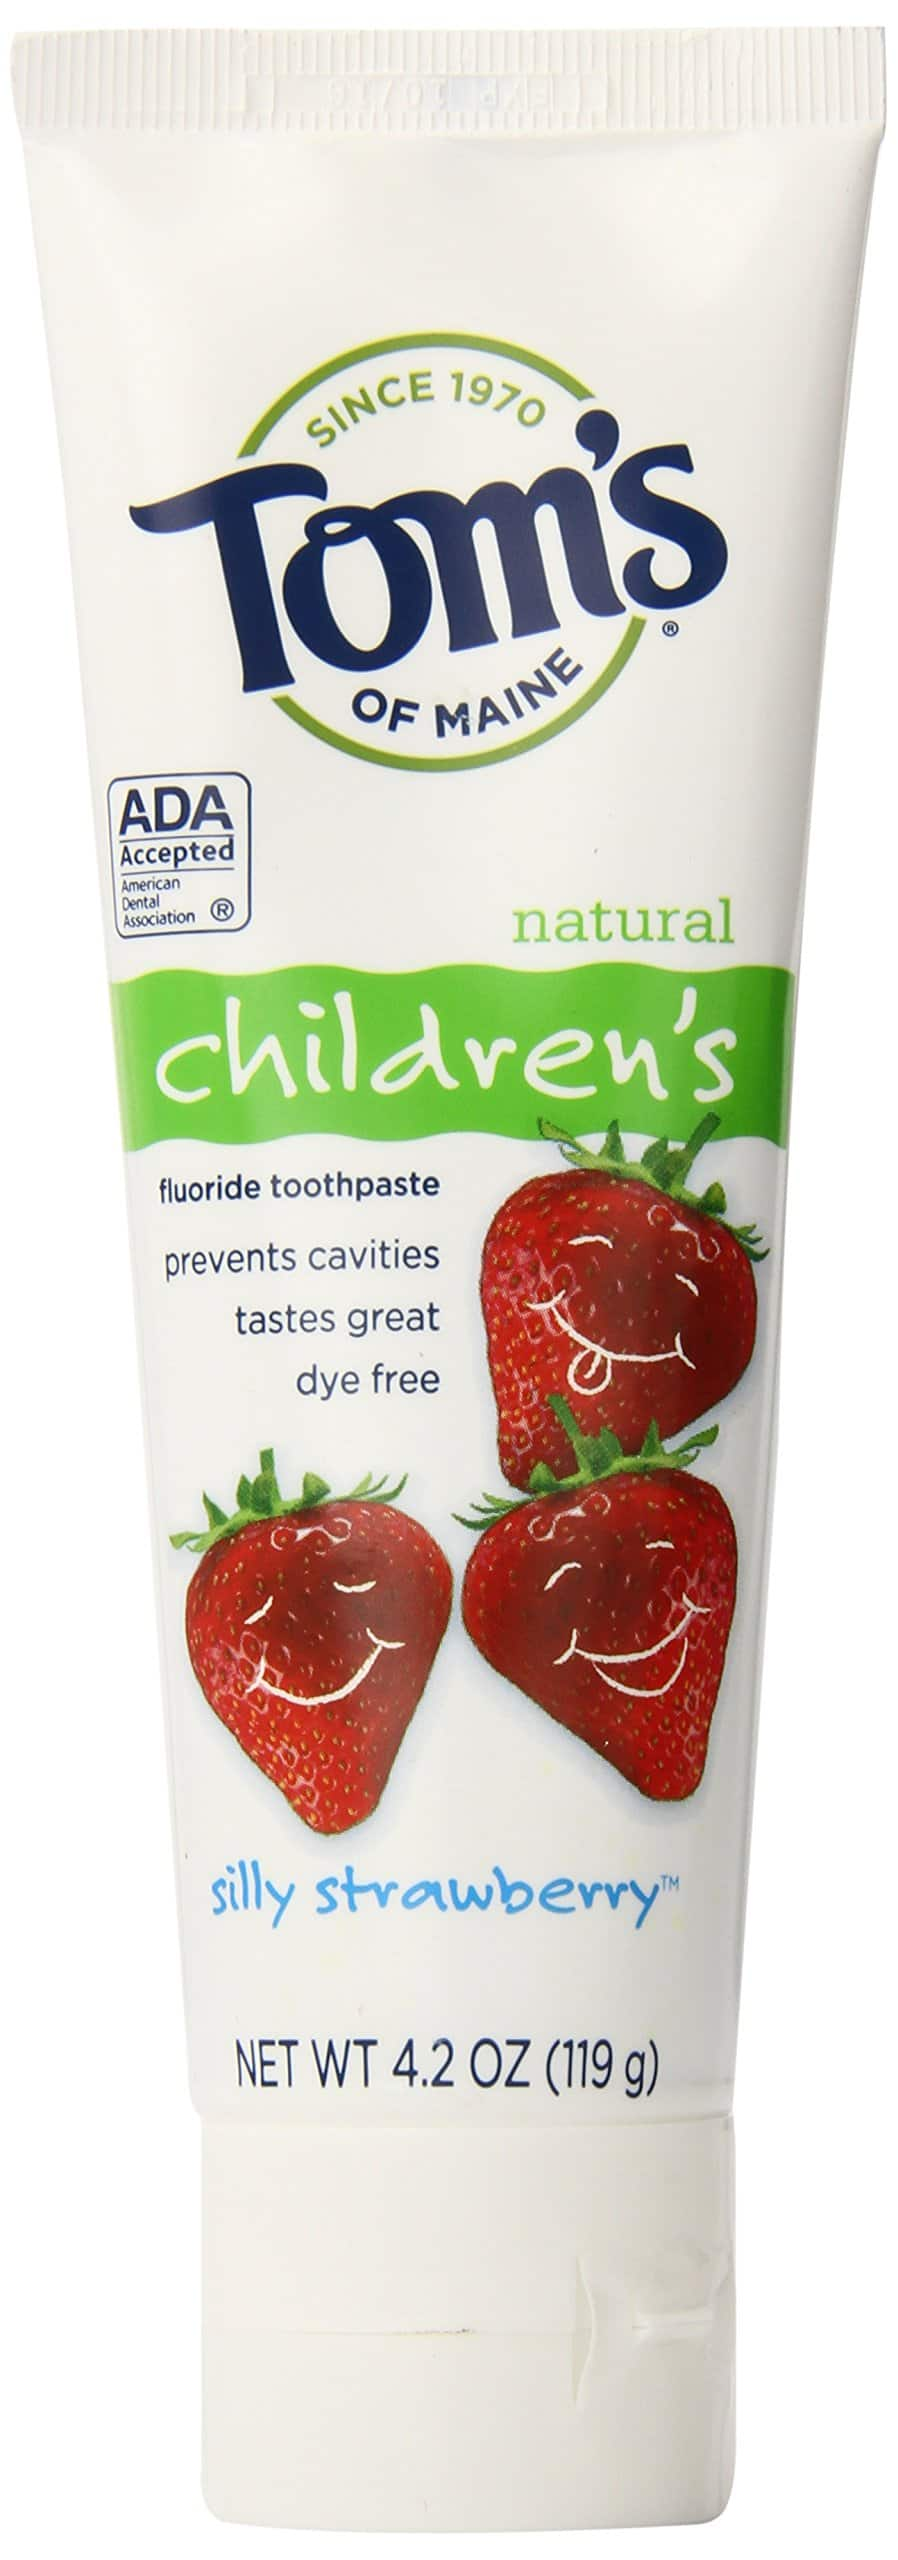 Tom's of Maine Toddlers Fluoride-Free Natural Toothpaste 3 Count - AS low as $6.37